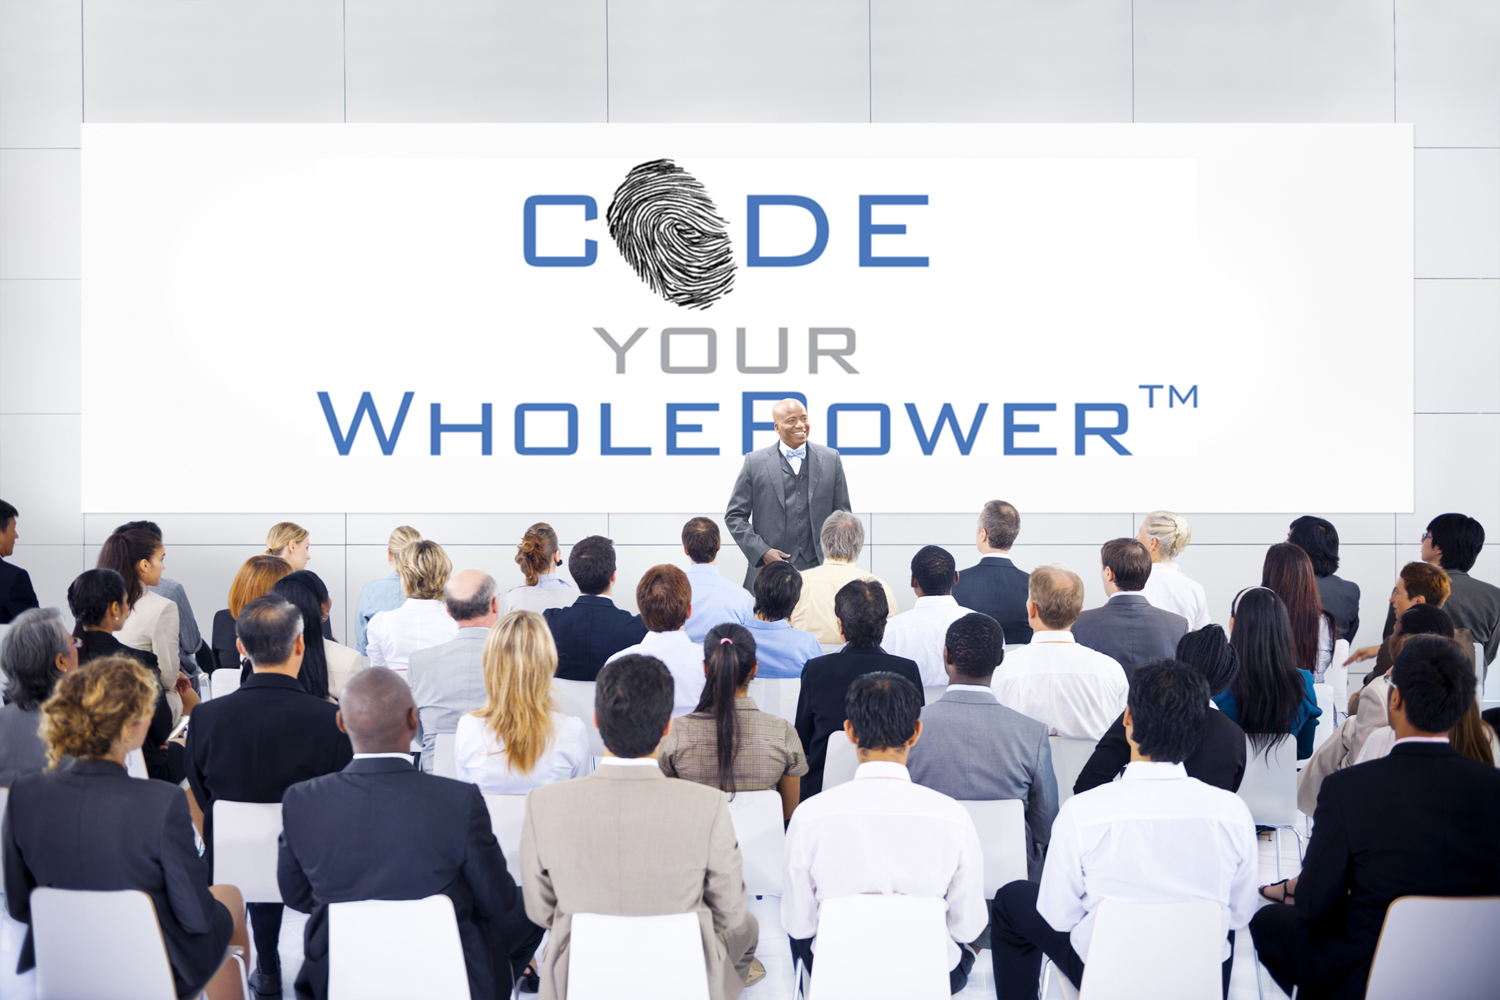 wholepower topics courtland warren large group of business people in presentation